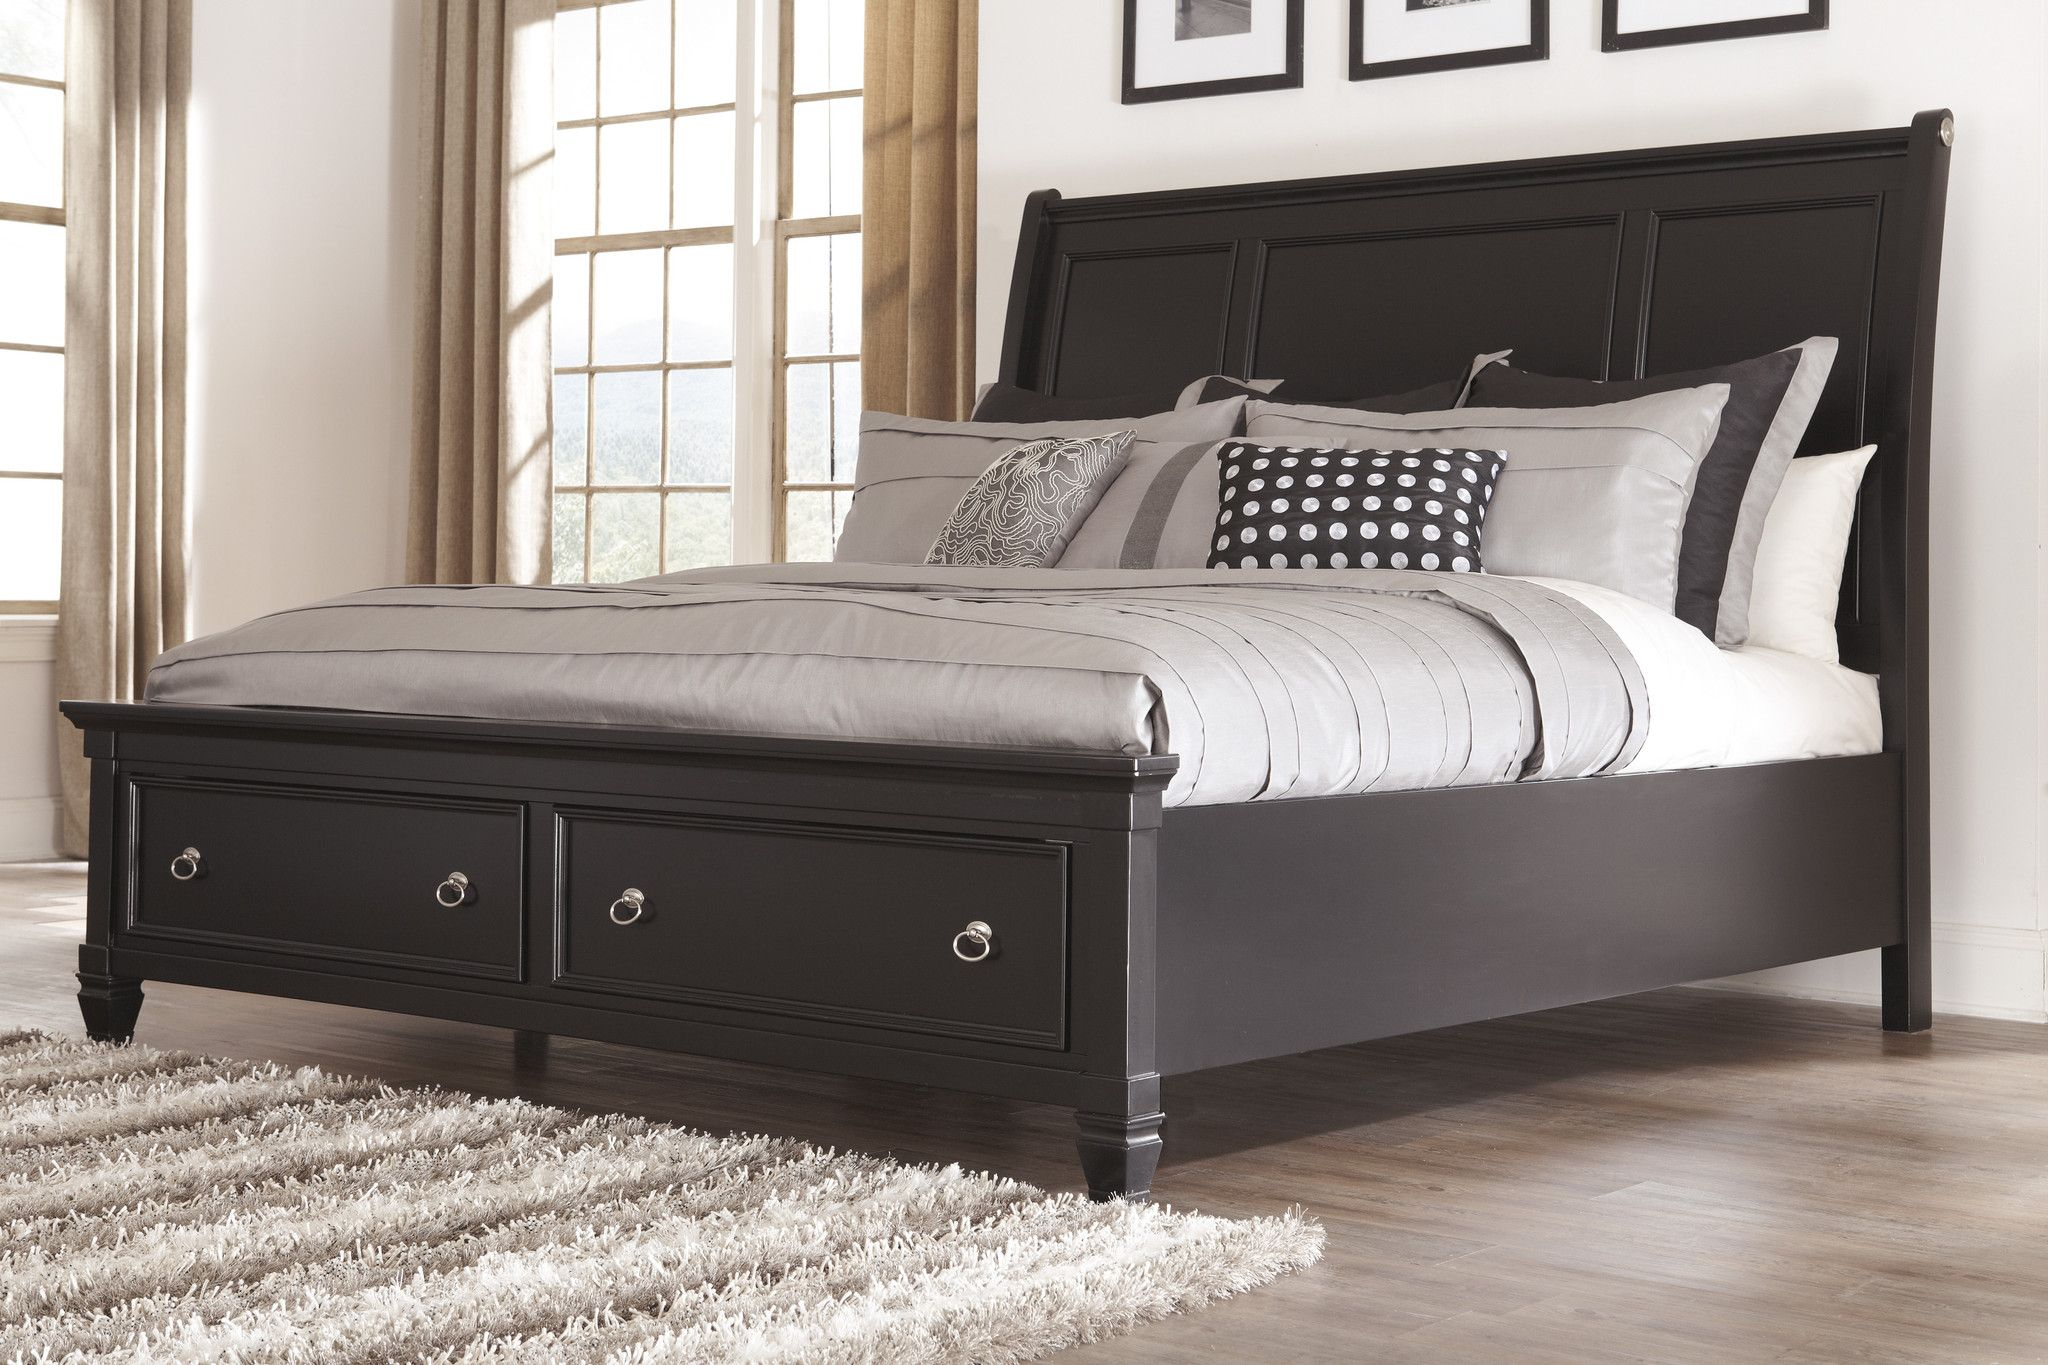 Greensburg Storage Sleigh Bed California king bed frame